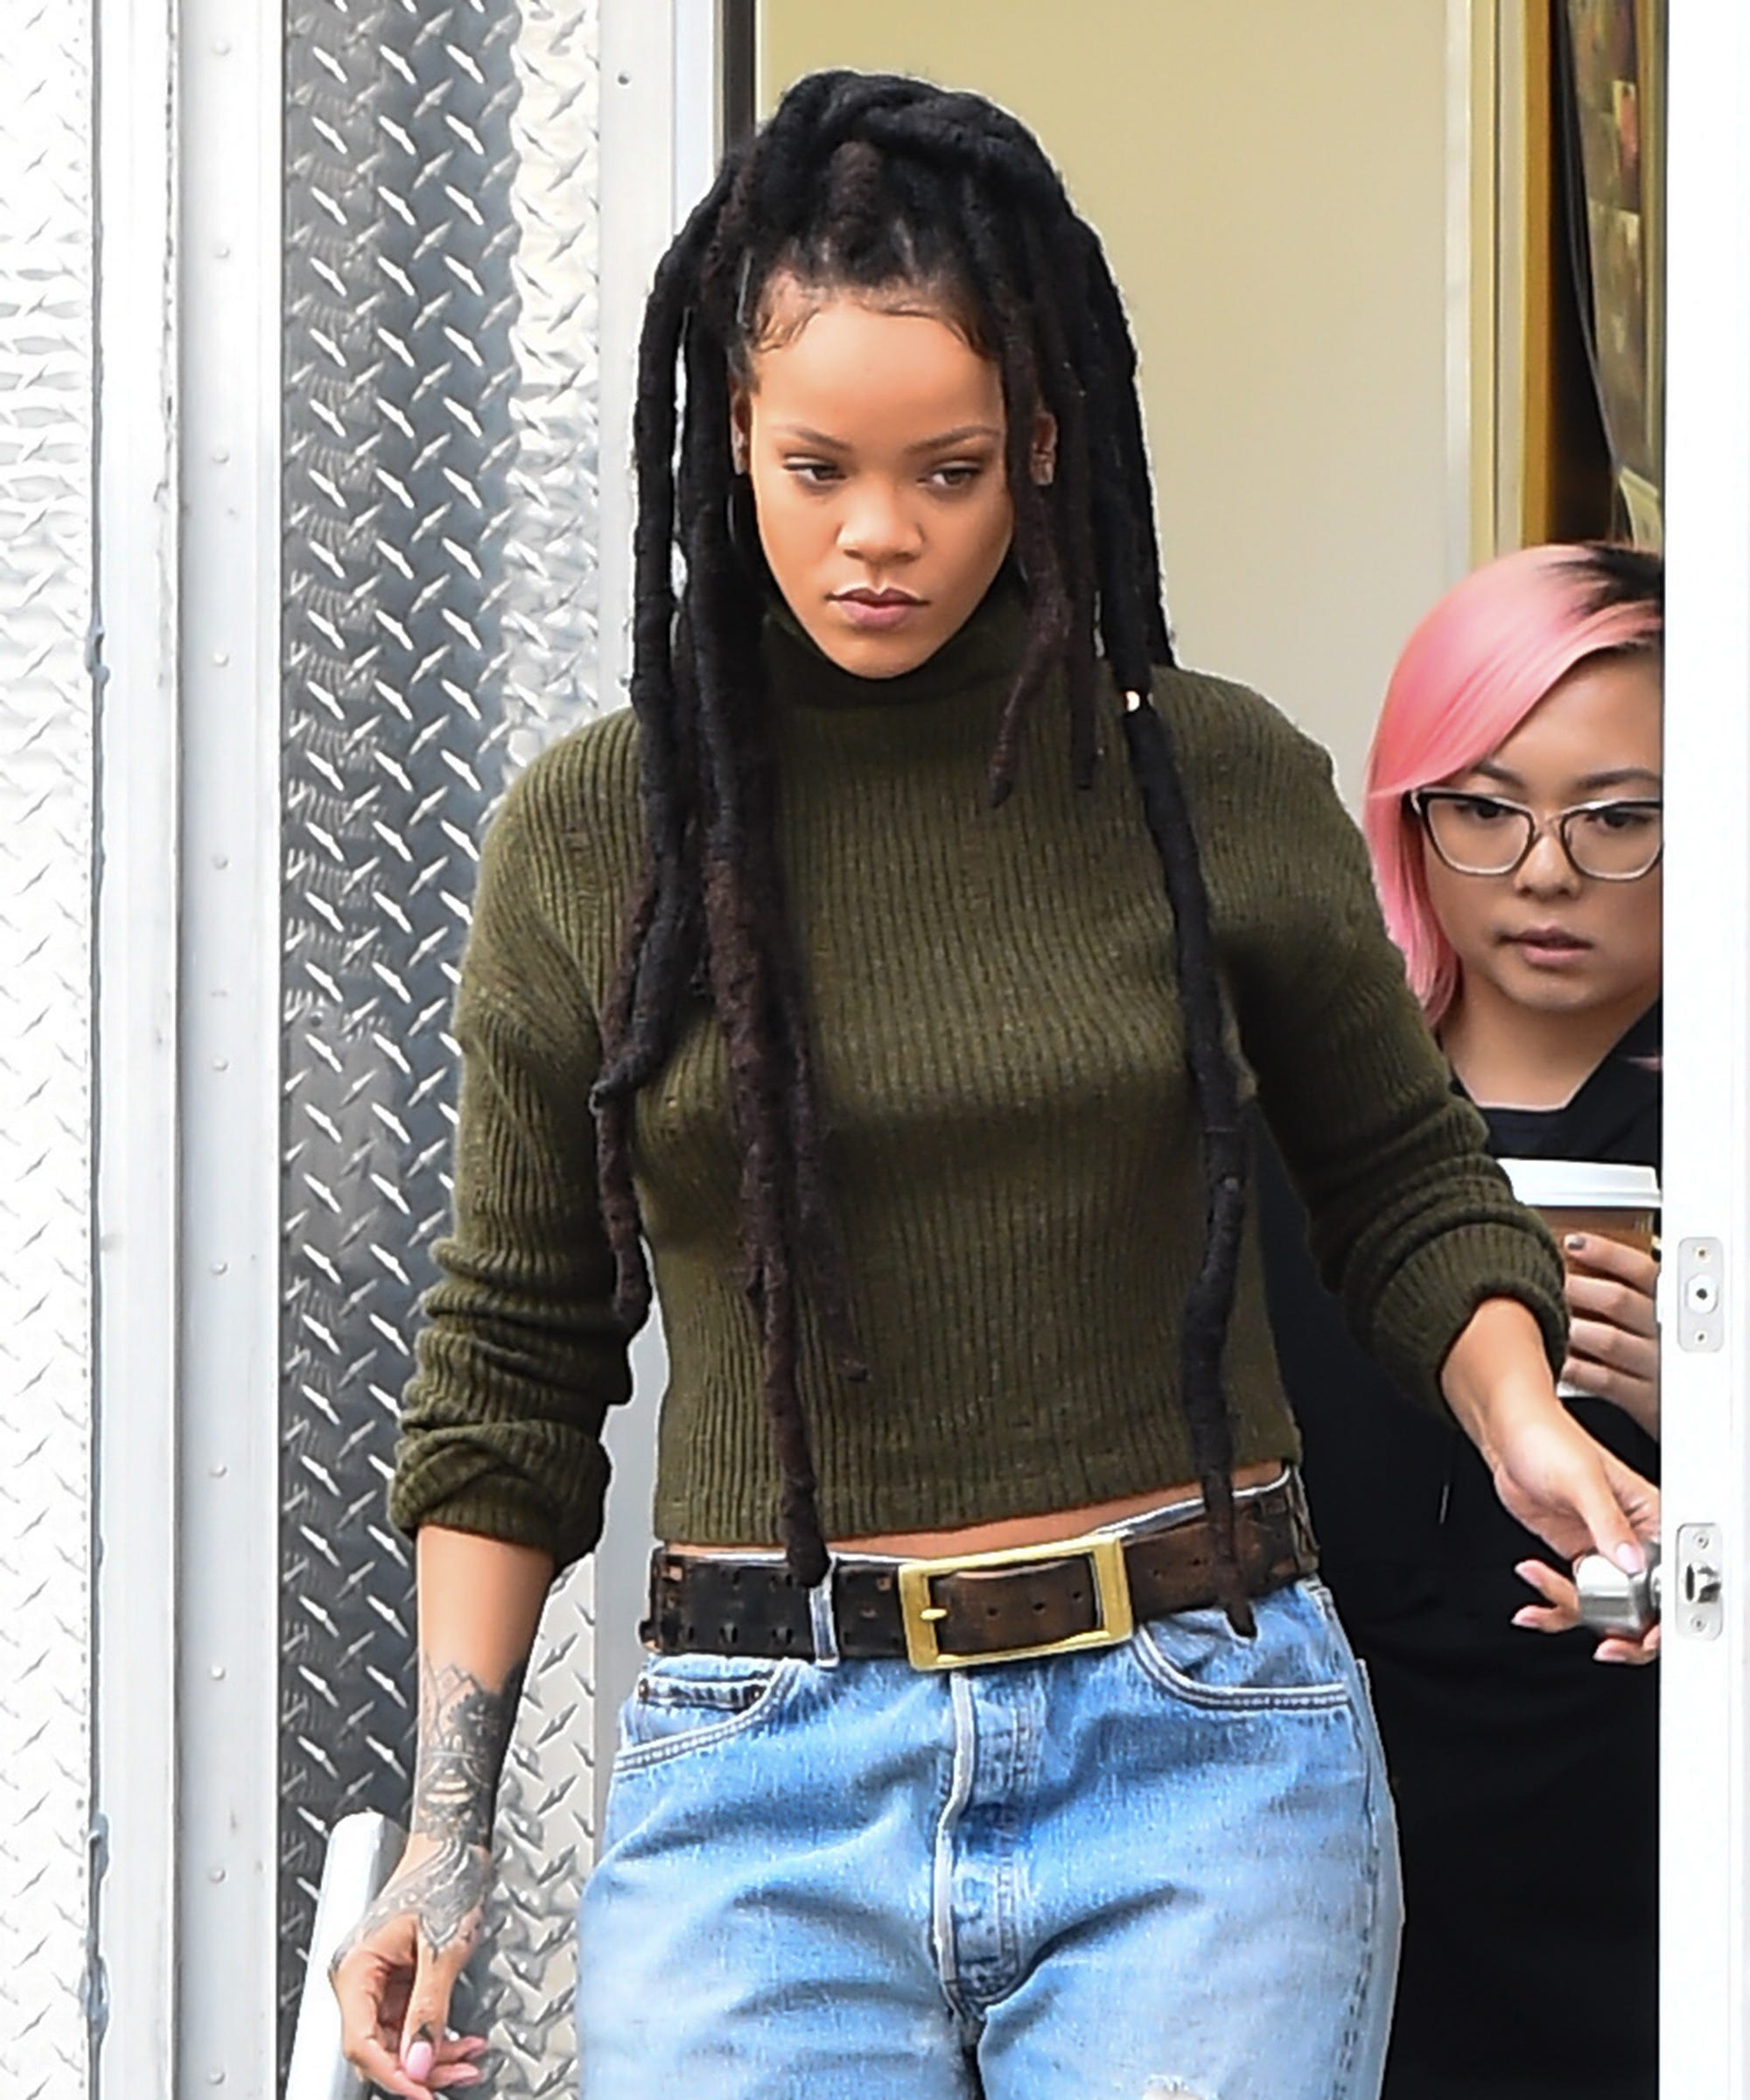 Rihanna Explains Her Locs Hairstyle Choice In Oceans 8